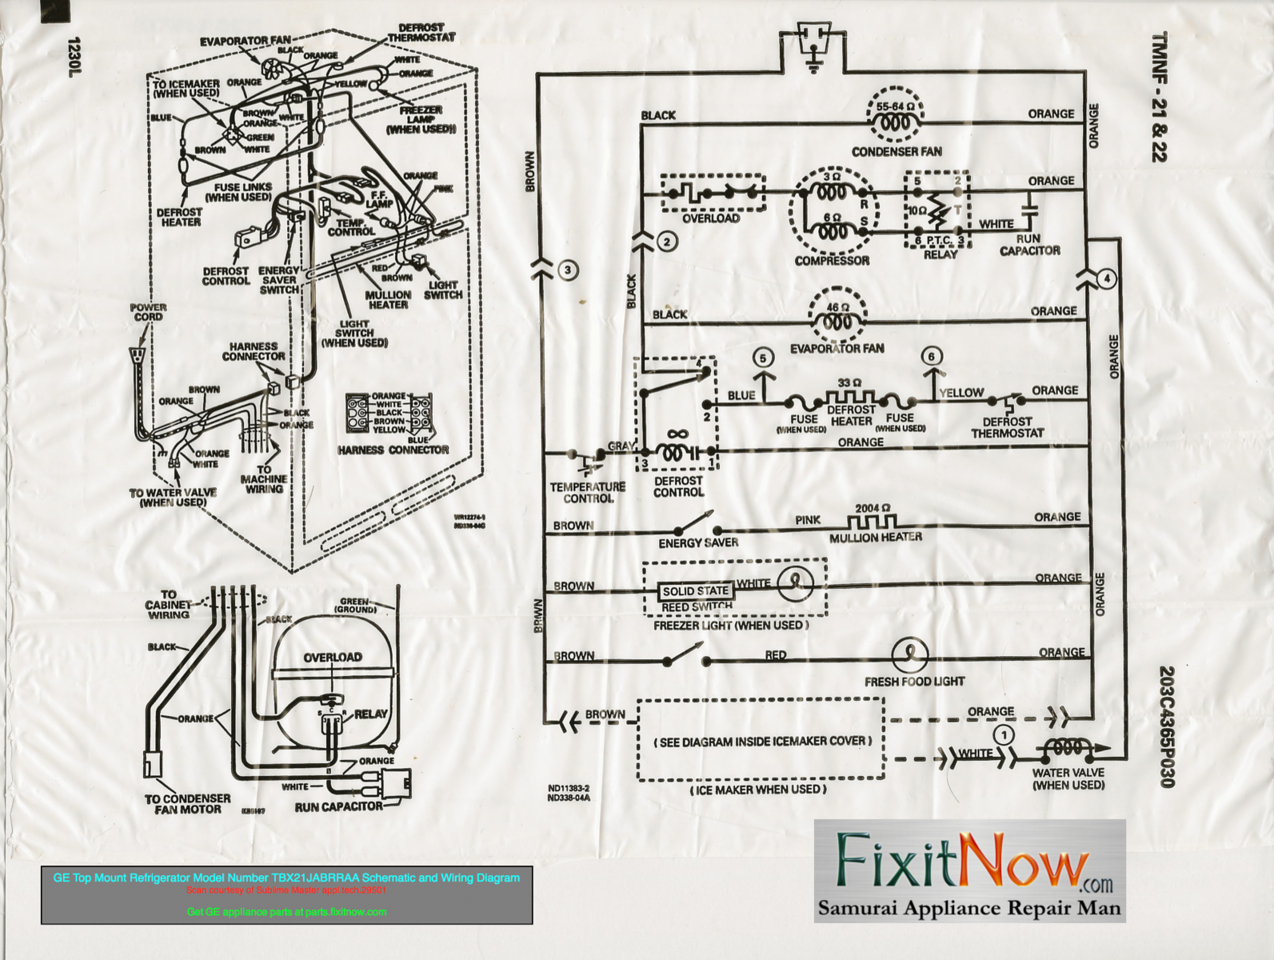 hight resolution of ge stove wiring schematic wiring diagramge stove wiring diagram electronic schematics collectionsge stove wiring schematic 5